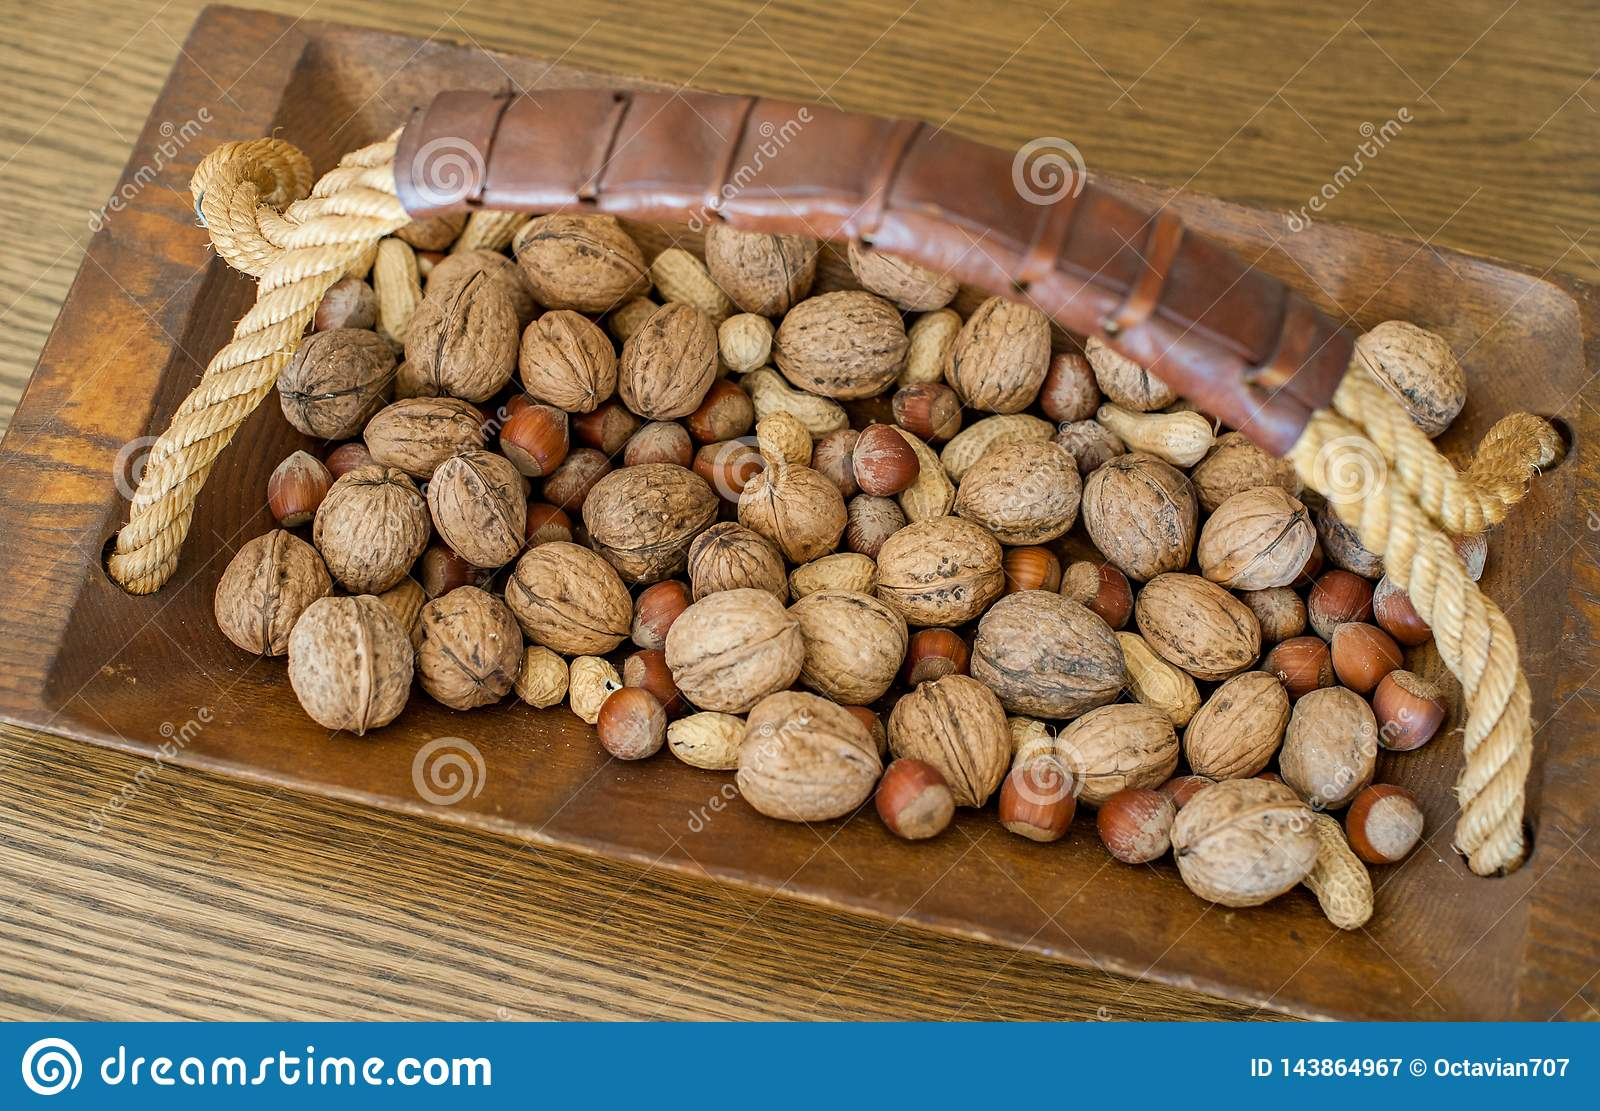 Different nuts in a wooden bowl